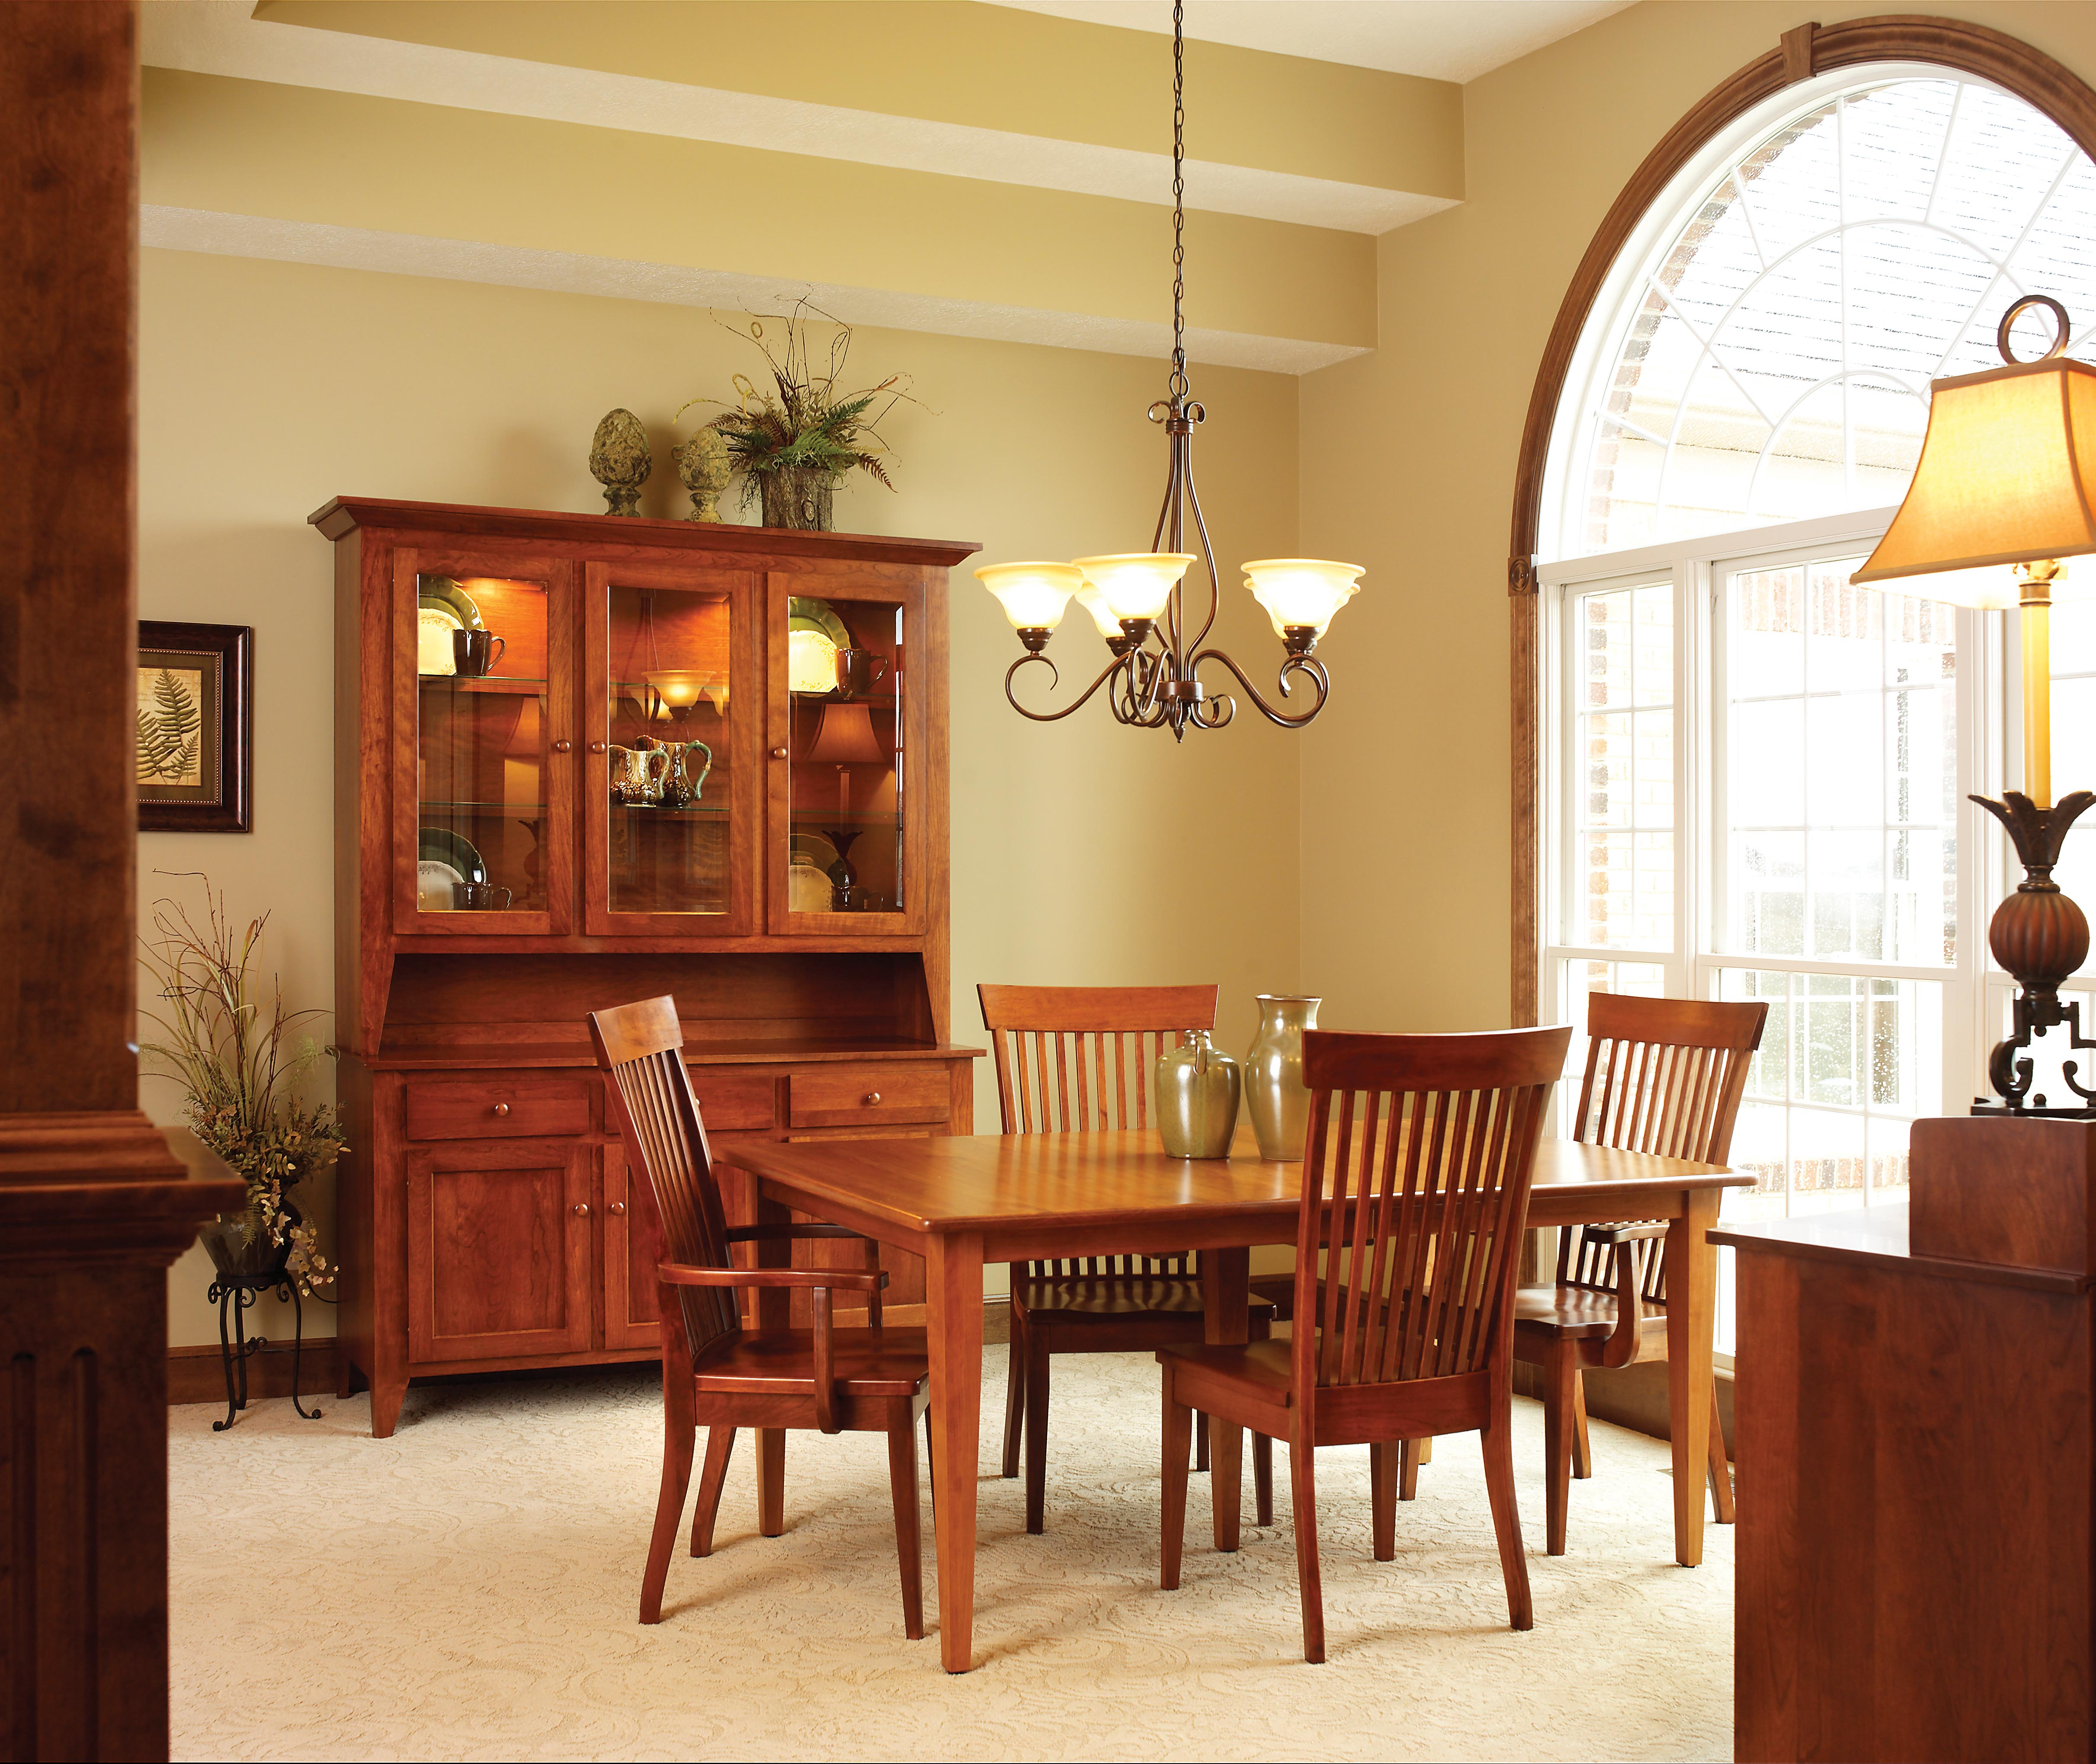 dernbach-dining-collection-mennonite-amish-furniture-aylmer